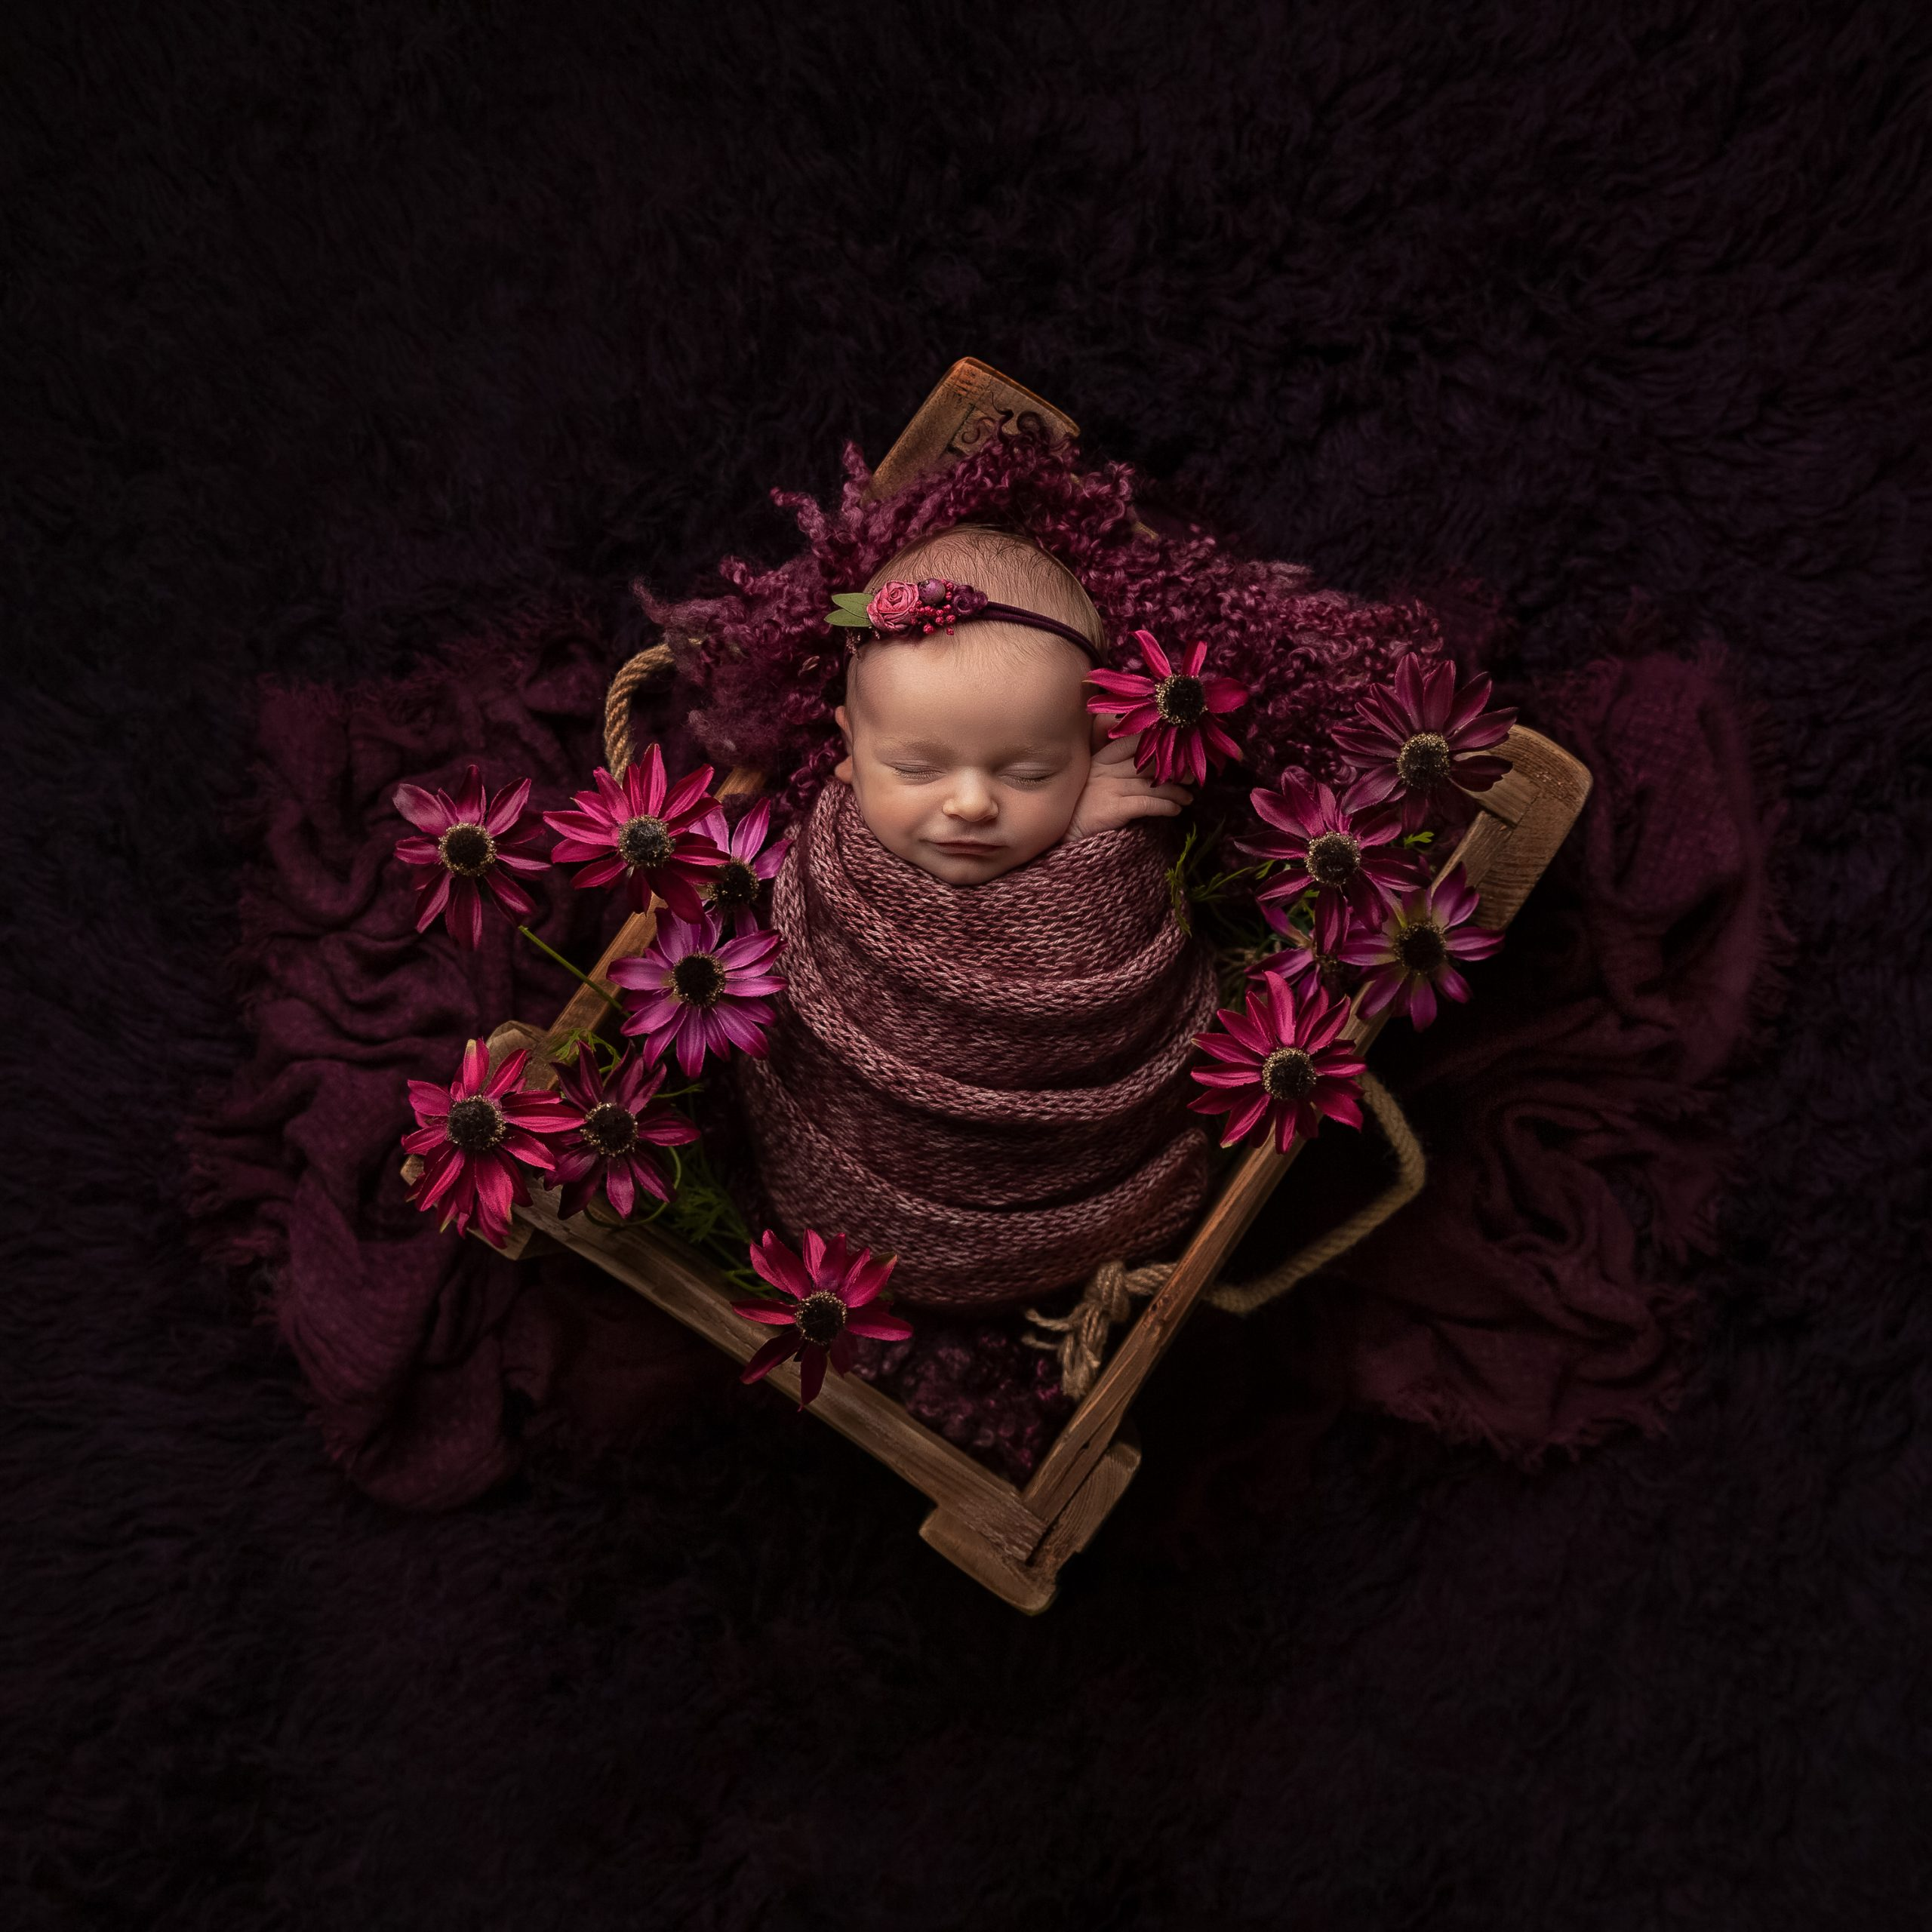 Baby girl in a wooden crate surrounded by echinacea as part of my Master Craftsman in Newborn Photography panel by award winning photographer